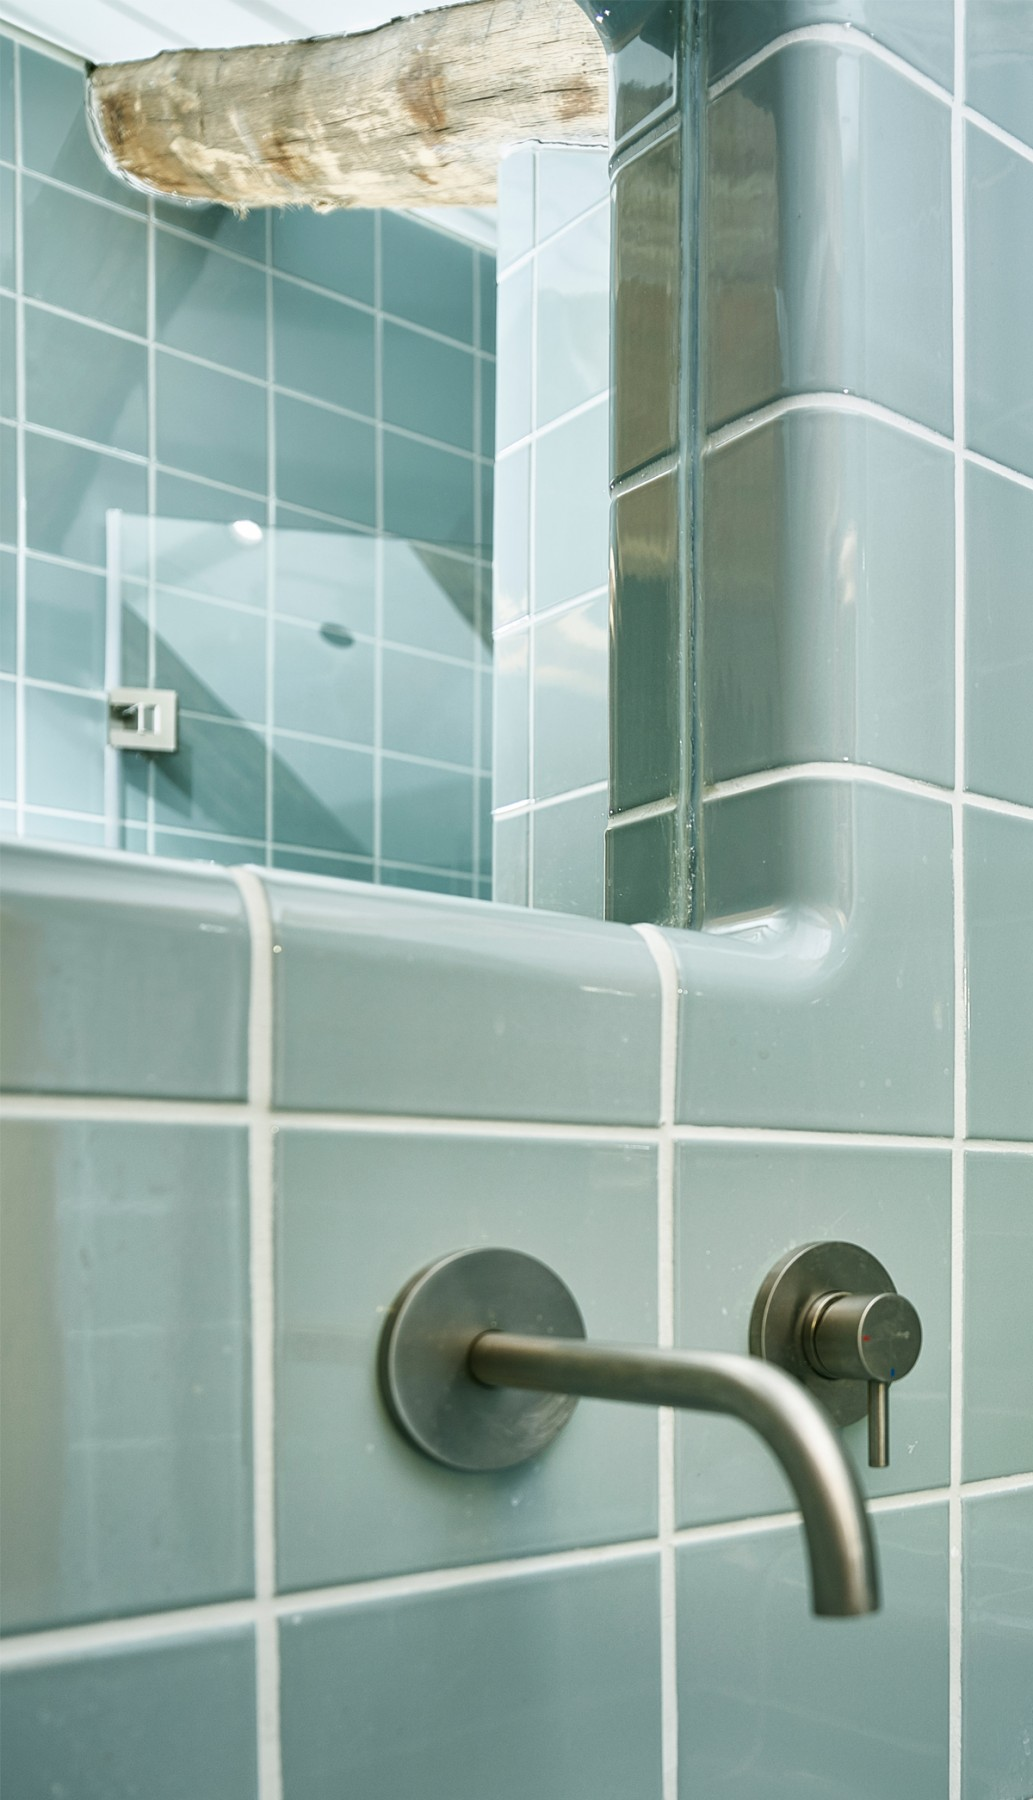 Tiles with water taps, tiling with rounded 3d corners and integrated functions